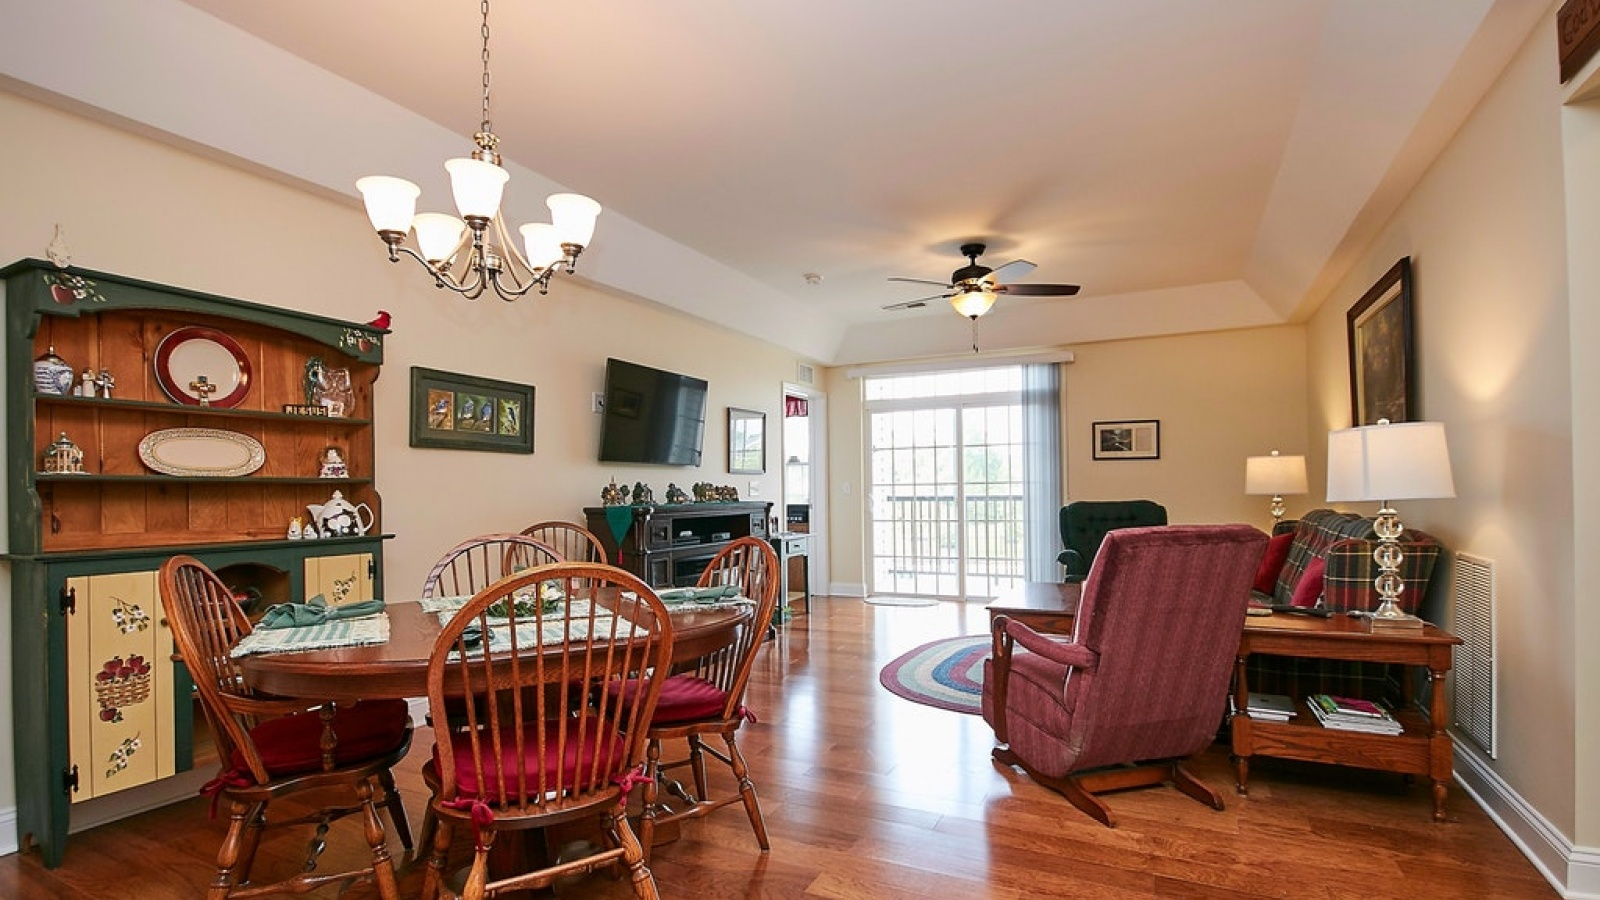 2 Bedrooms, Residential, For sale, Fountain Circle, 2 Bathrooms, Listing ID 1096, Manassas, United States, 20110,